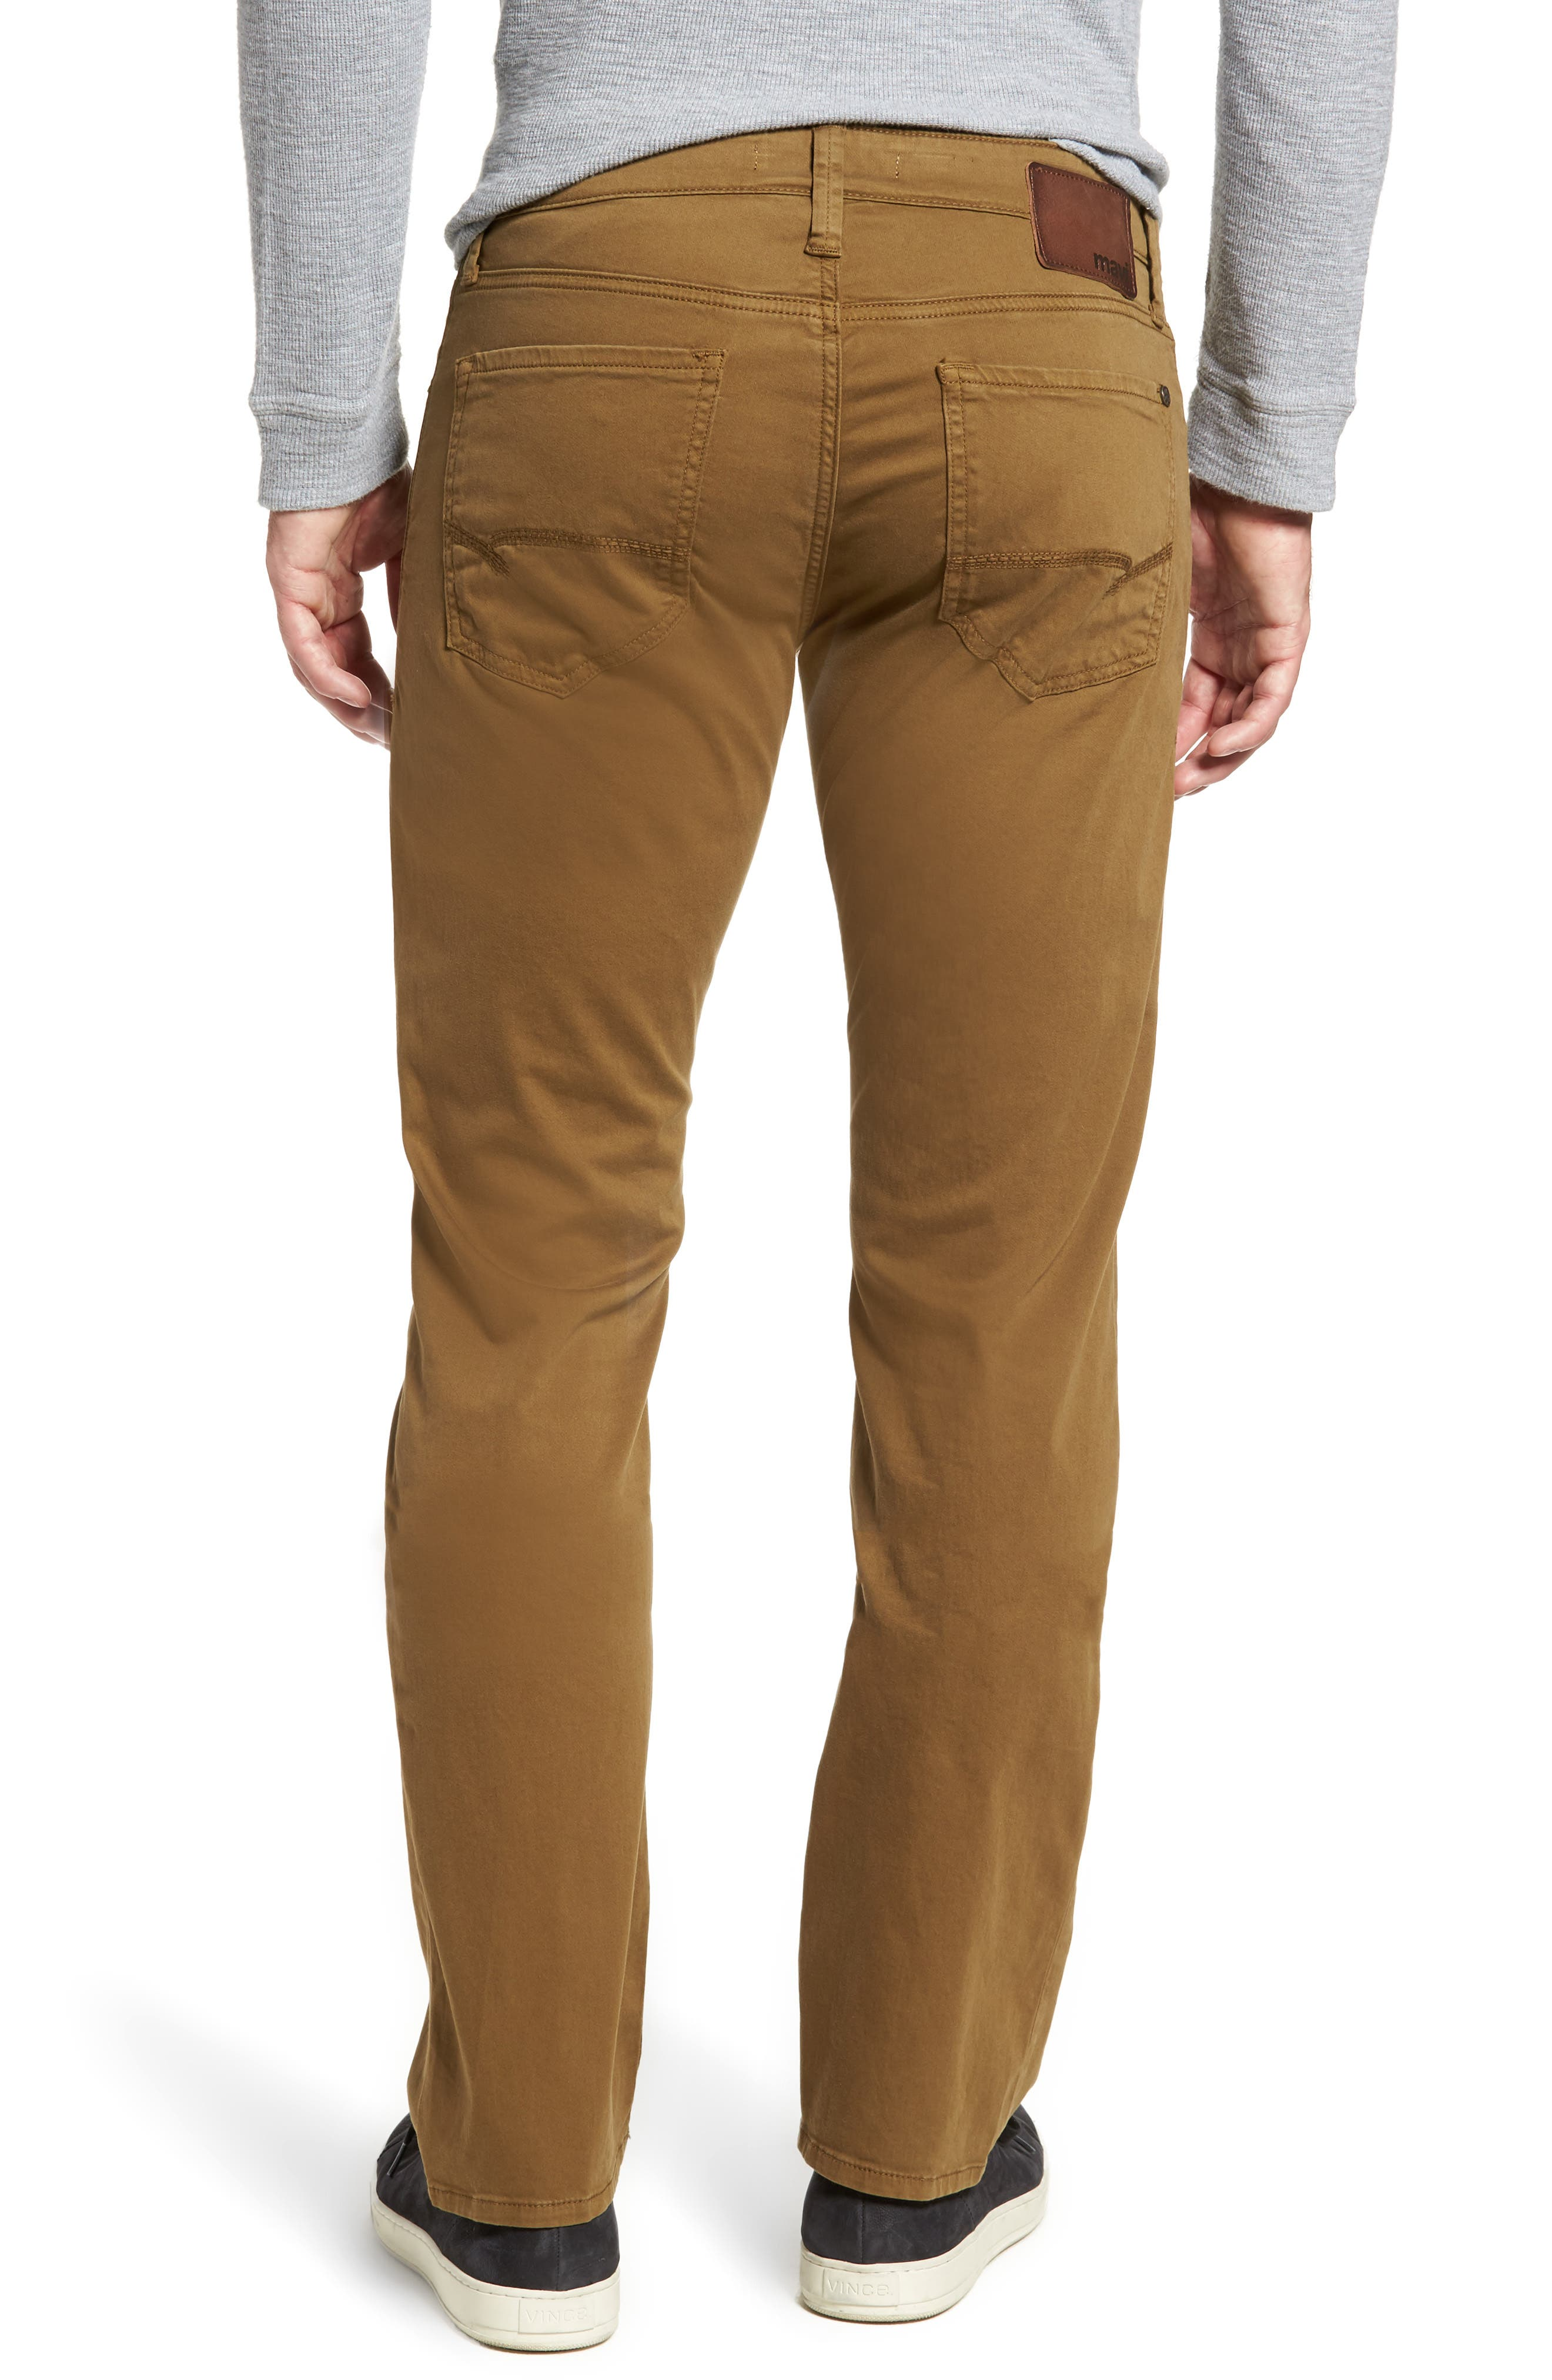 Zach Straight Leg Twill Pants,                             Alternate thumbnail 2, color,                             200